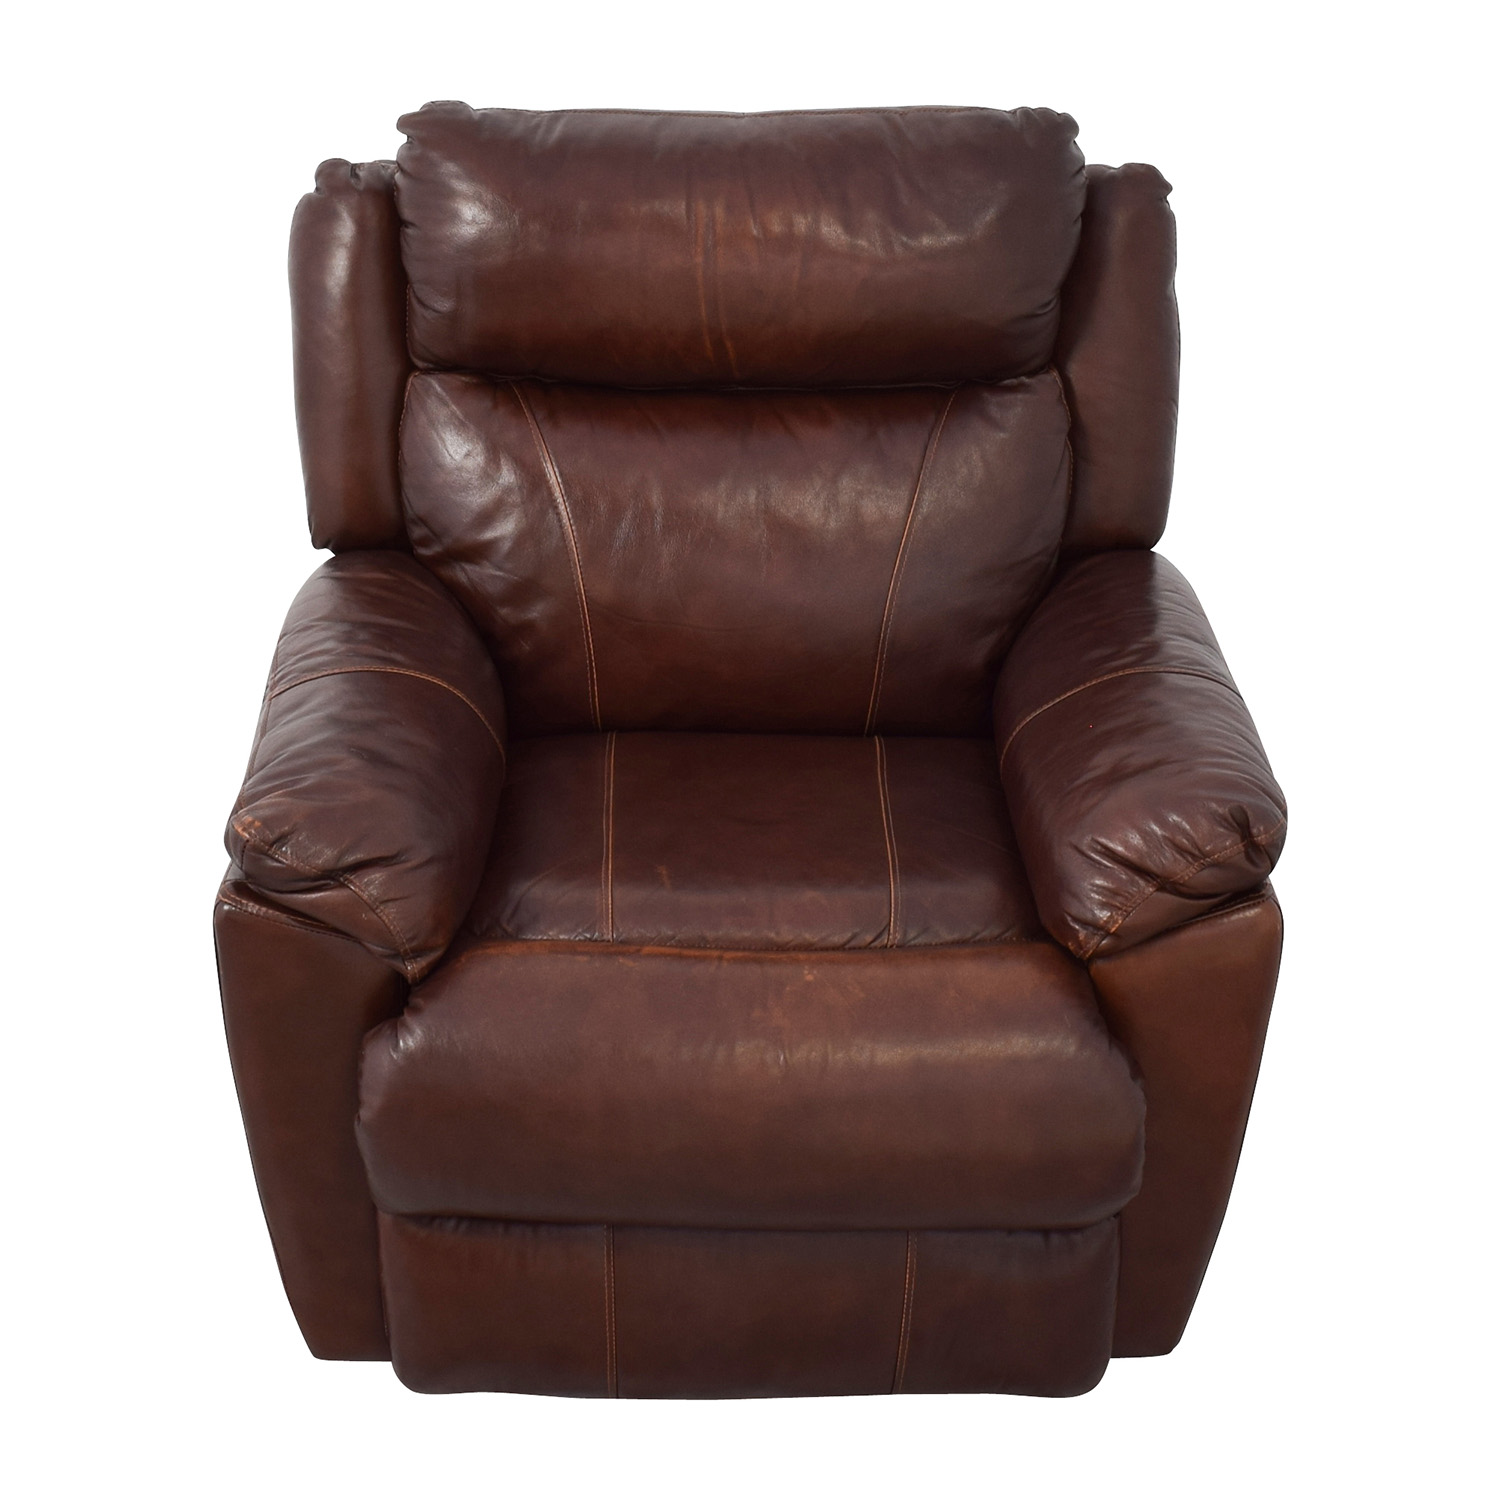 Macys Macys Brown Leather Power Recliner nyc